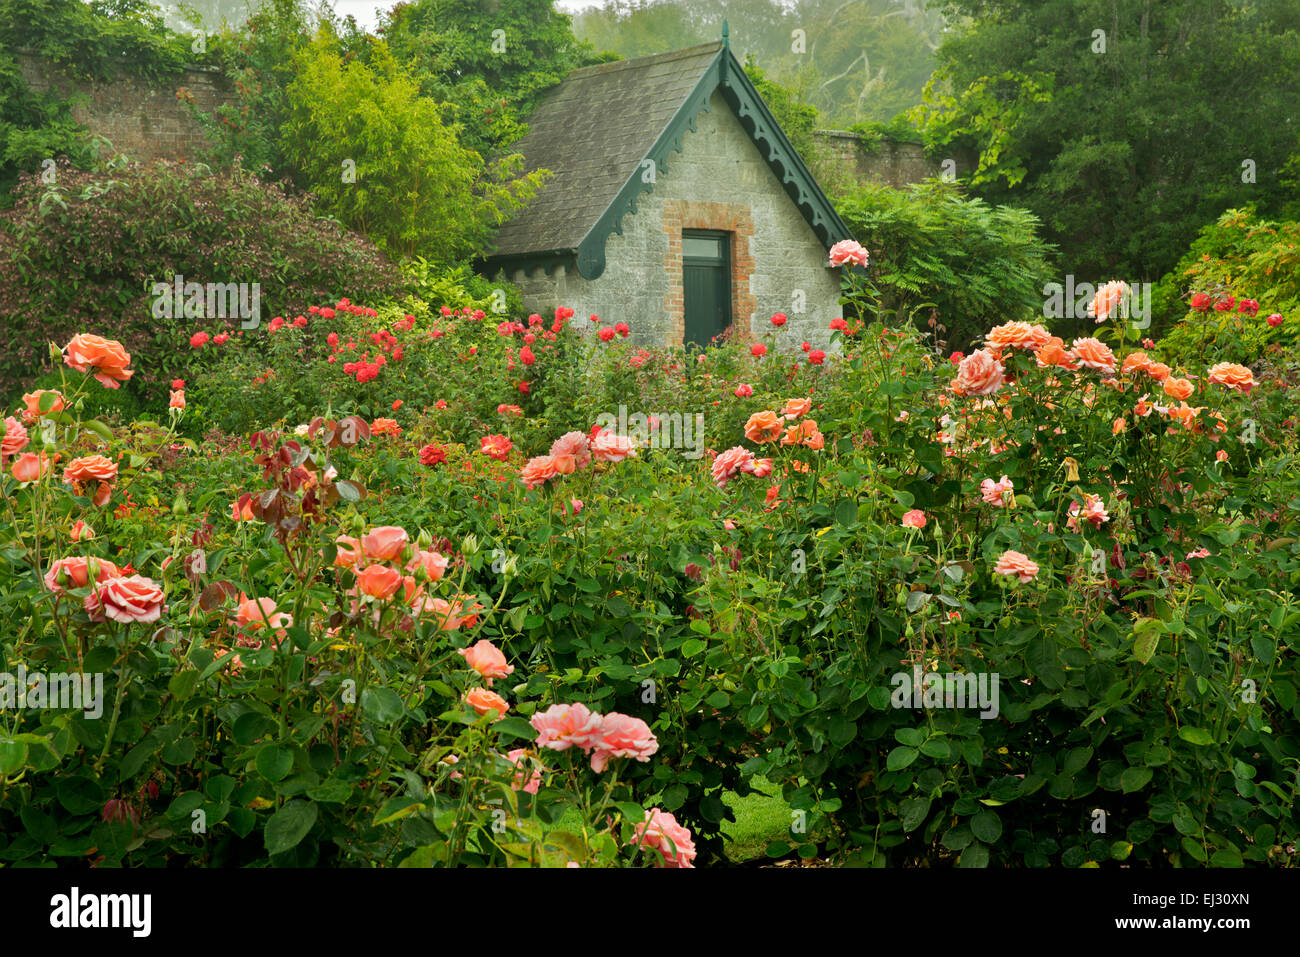 Rose garden and cottage. Gardens at Domoland Castle, Ireland - Stock Image